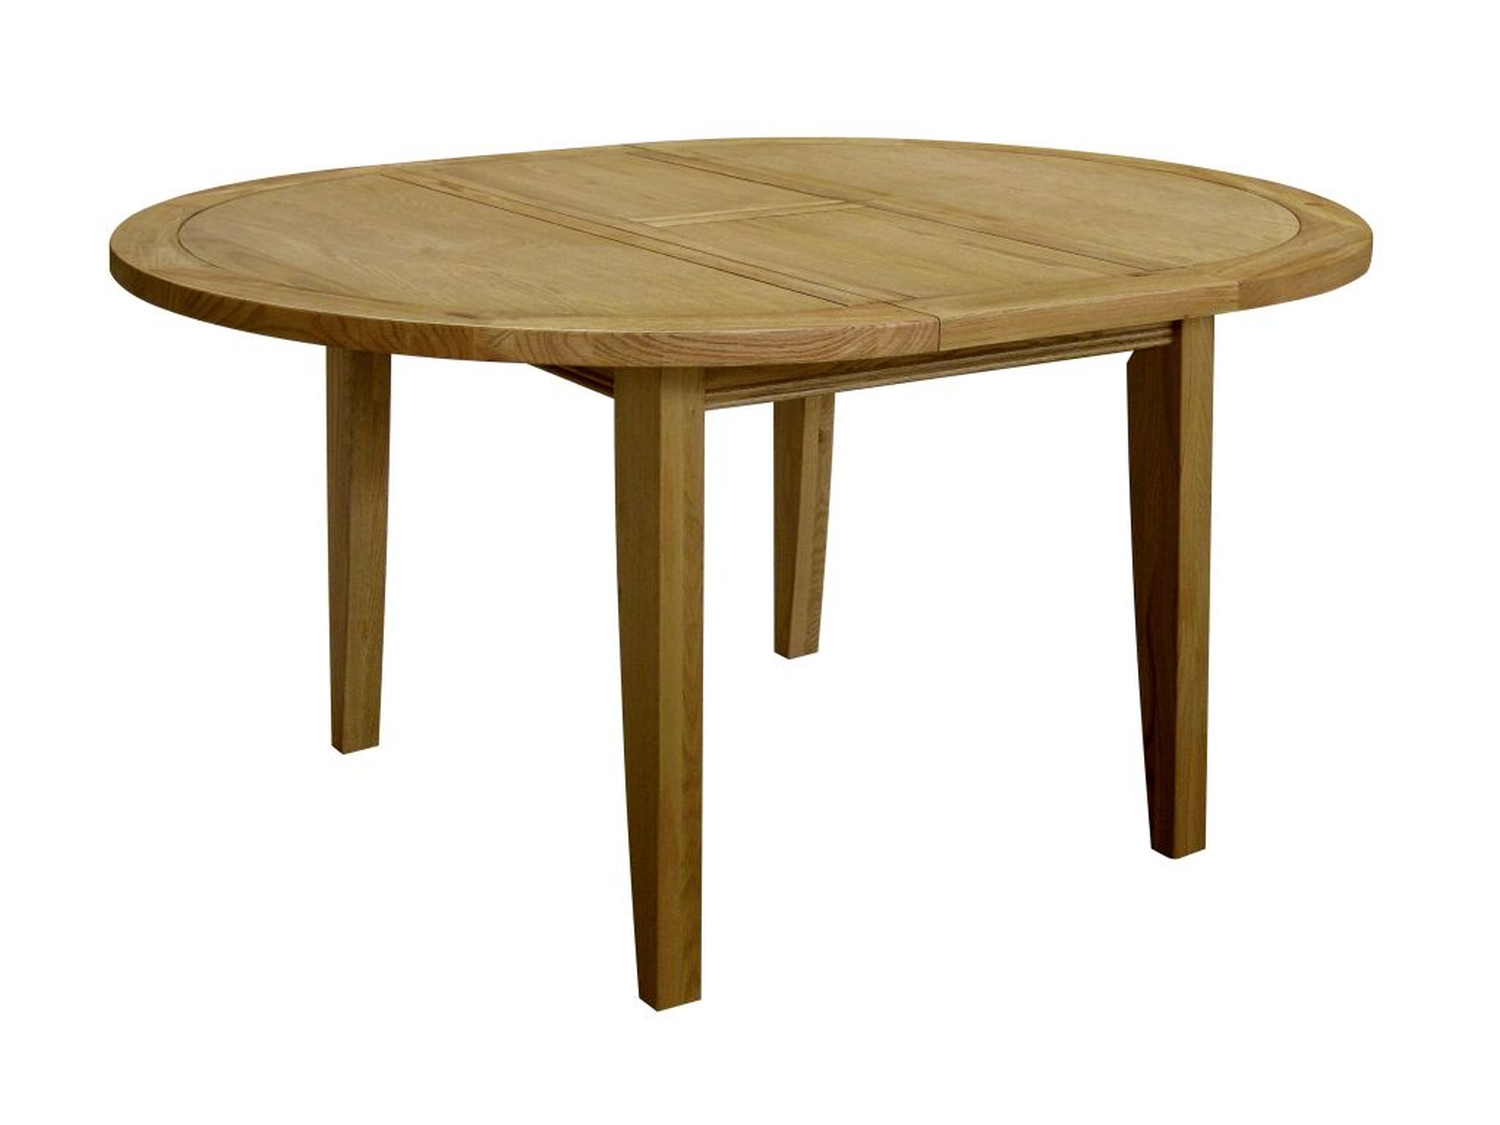 Linden Oak Dining Room Furniture Round Extending Dining Table